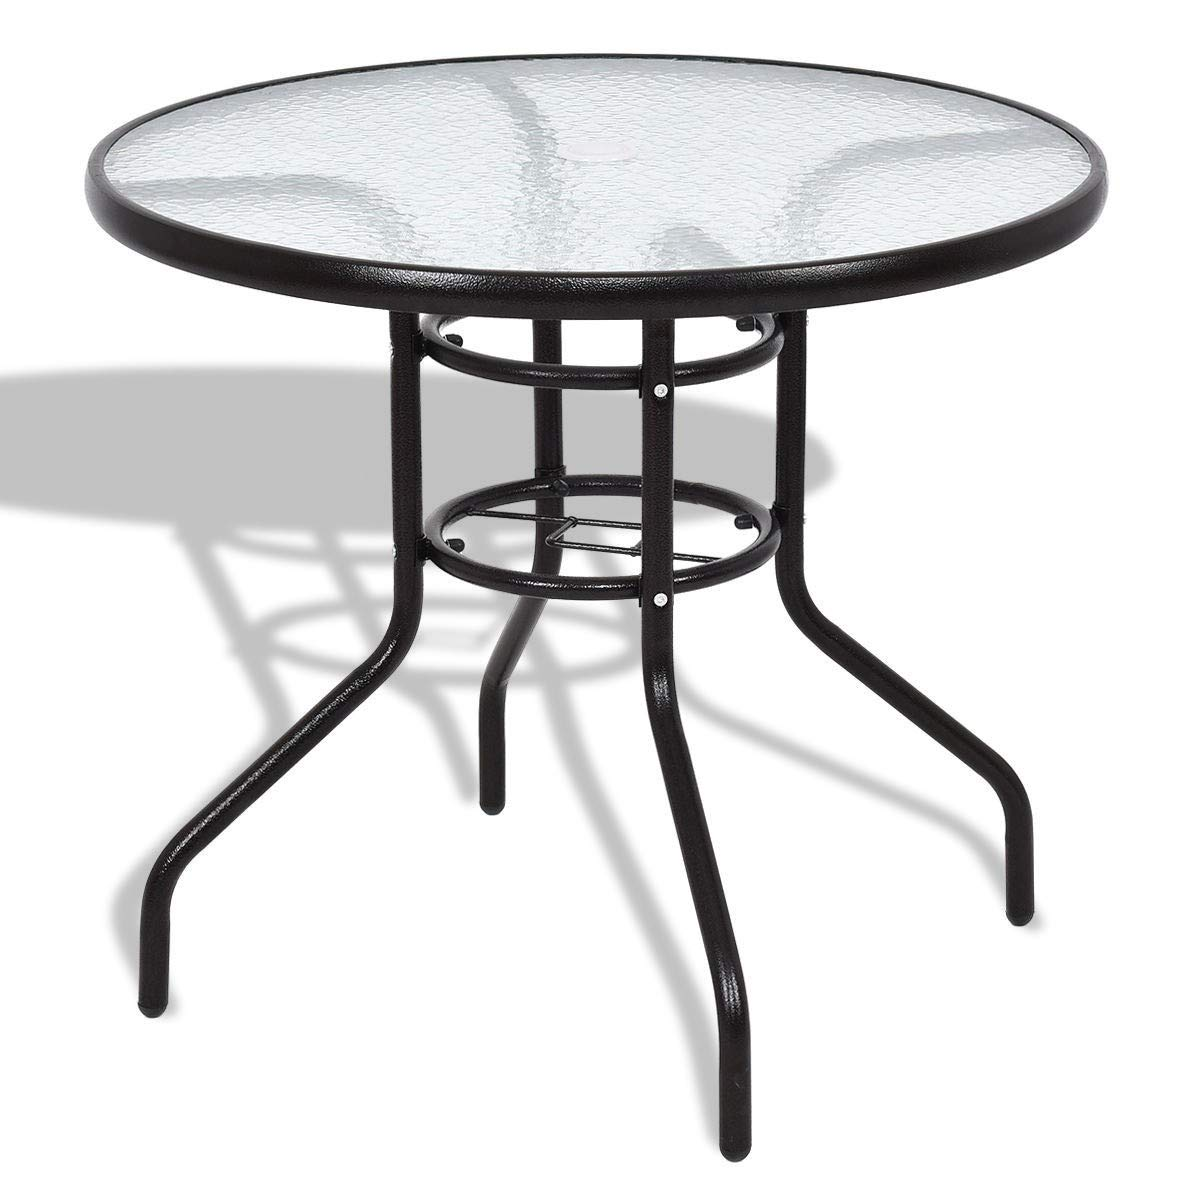 EnjoyShop Patio Round Table Steel Frame Dining Table Coffee Table for Lawn Backyard Balcony Pool